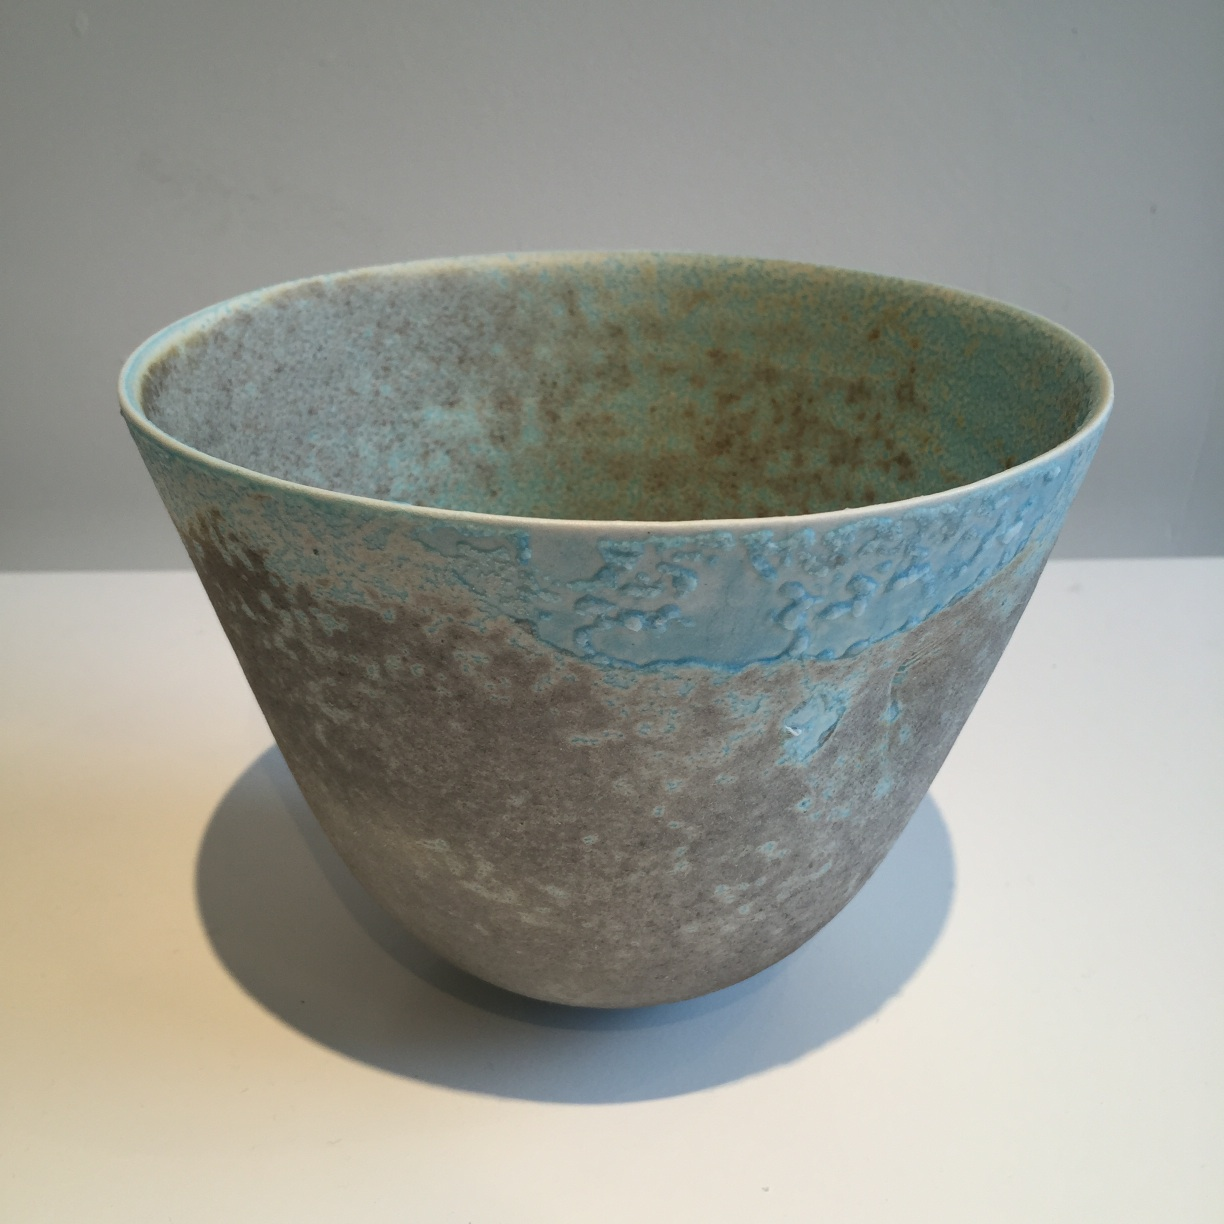 Jack Doherty, Conical Form 2, soda fired porcelain, 17 x 13cms, EUR260